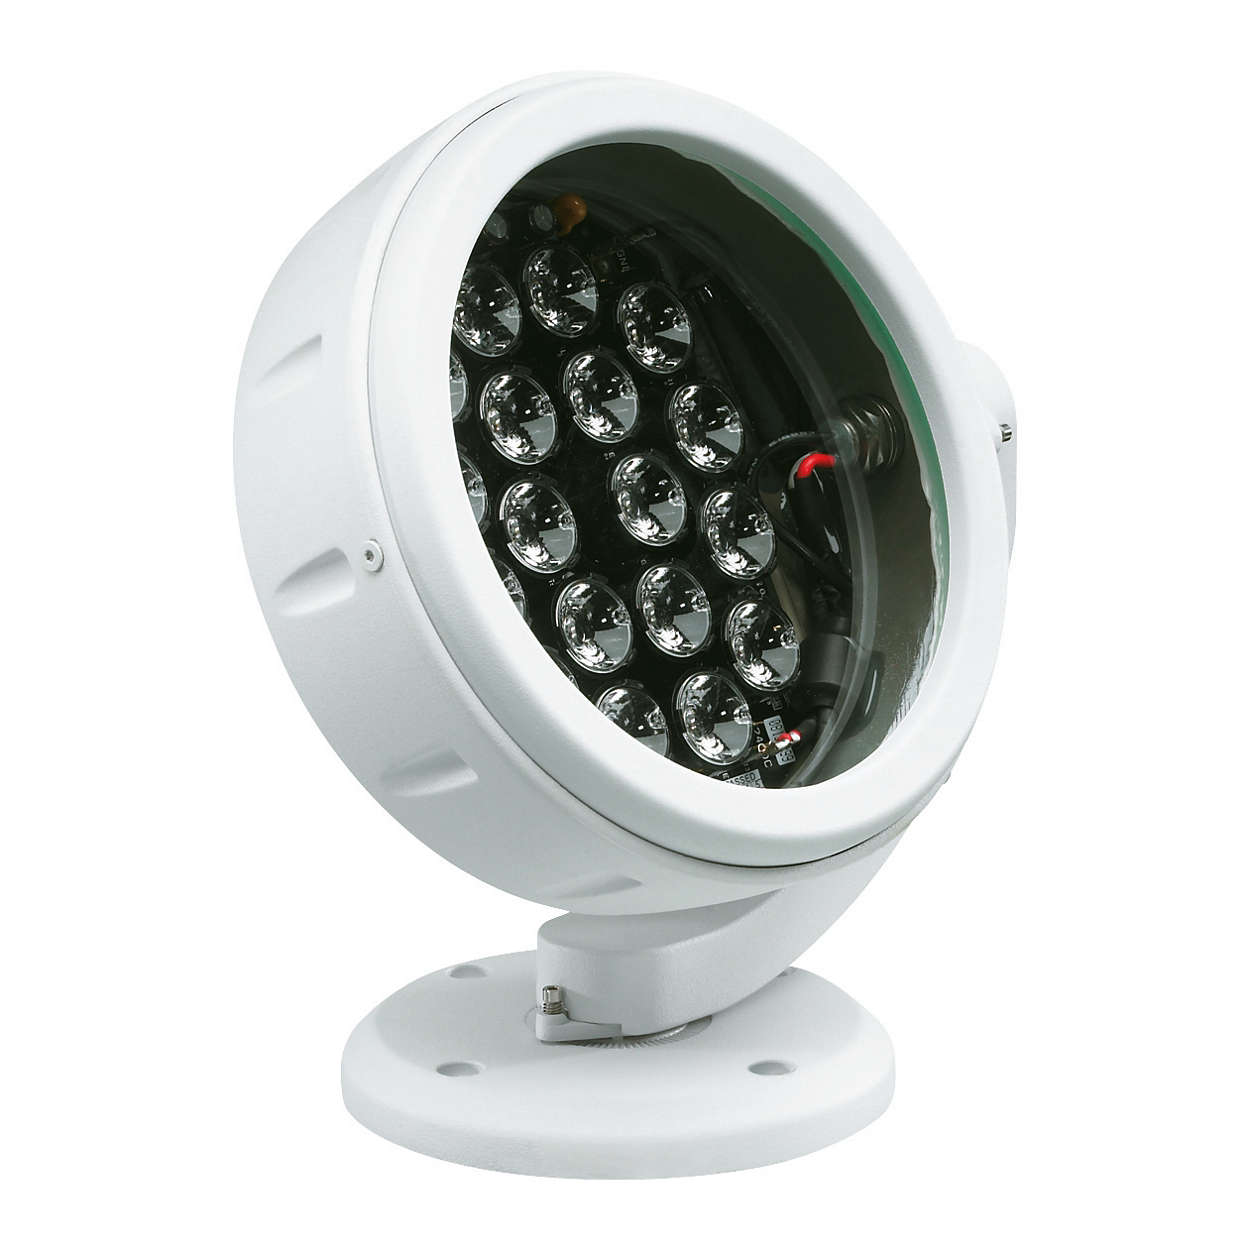 ColorBurst 6 – round, color-changing LED spotlight for indoor and outdoor applications